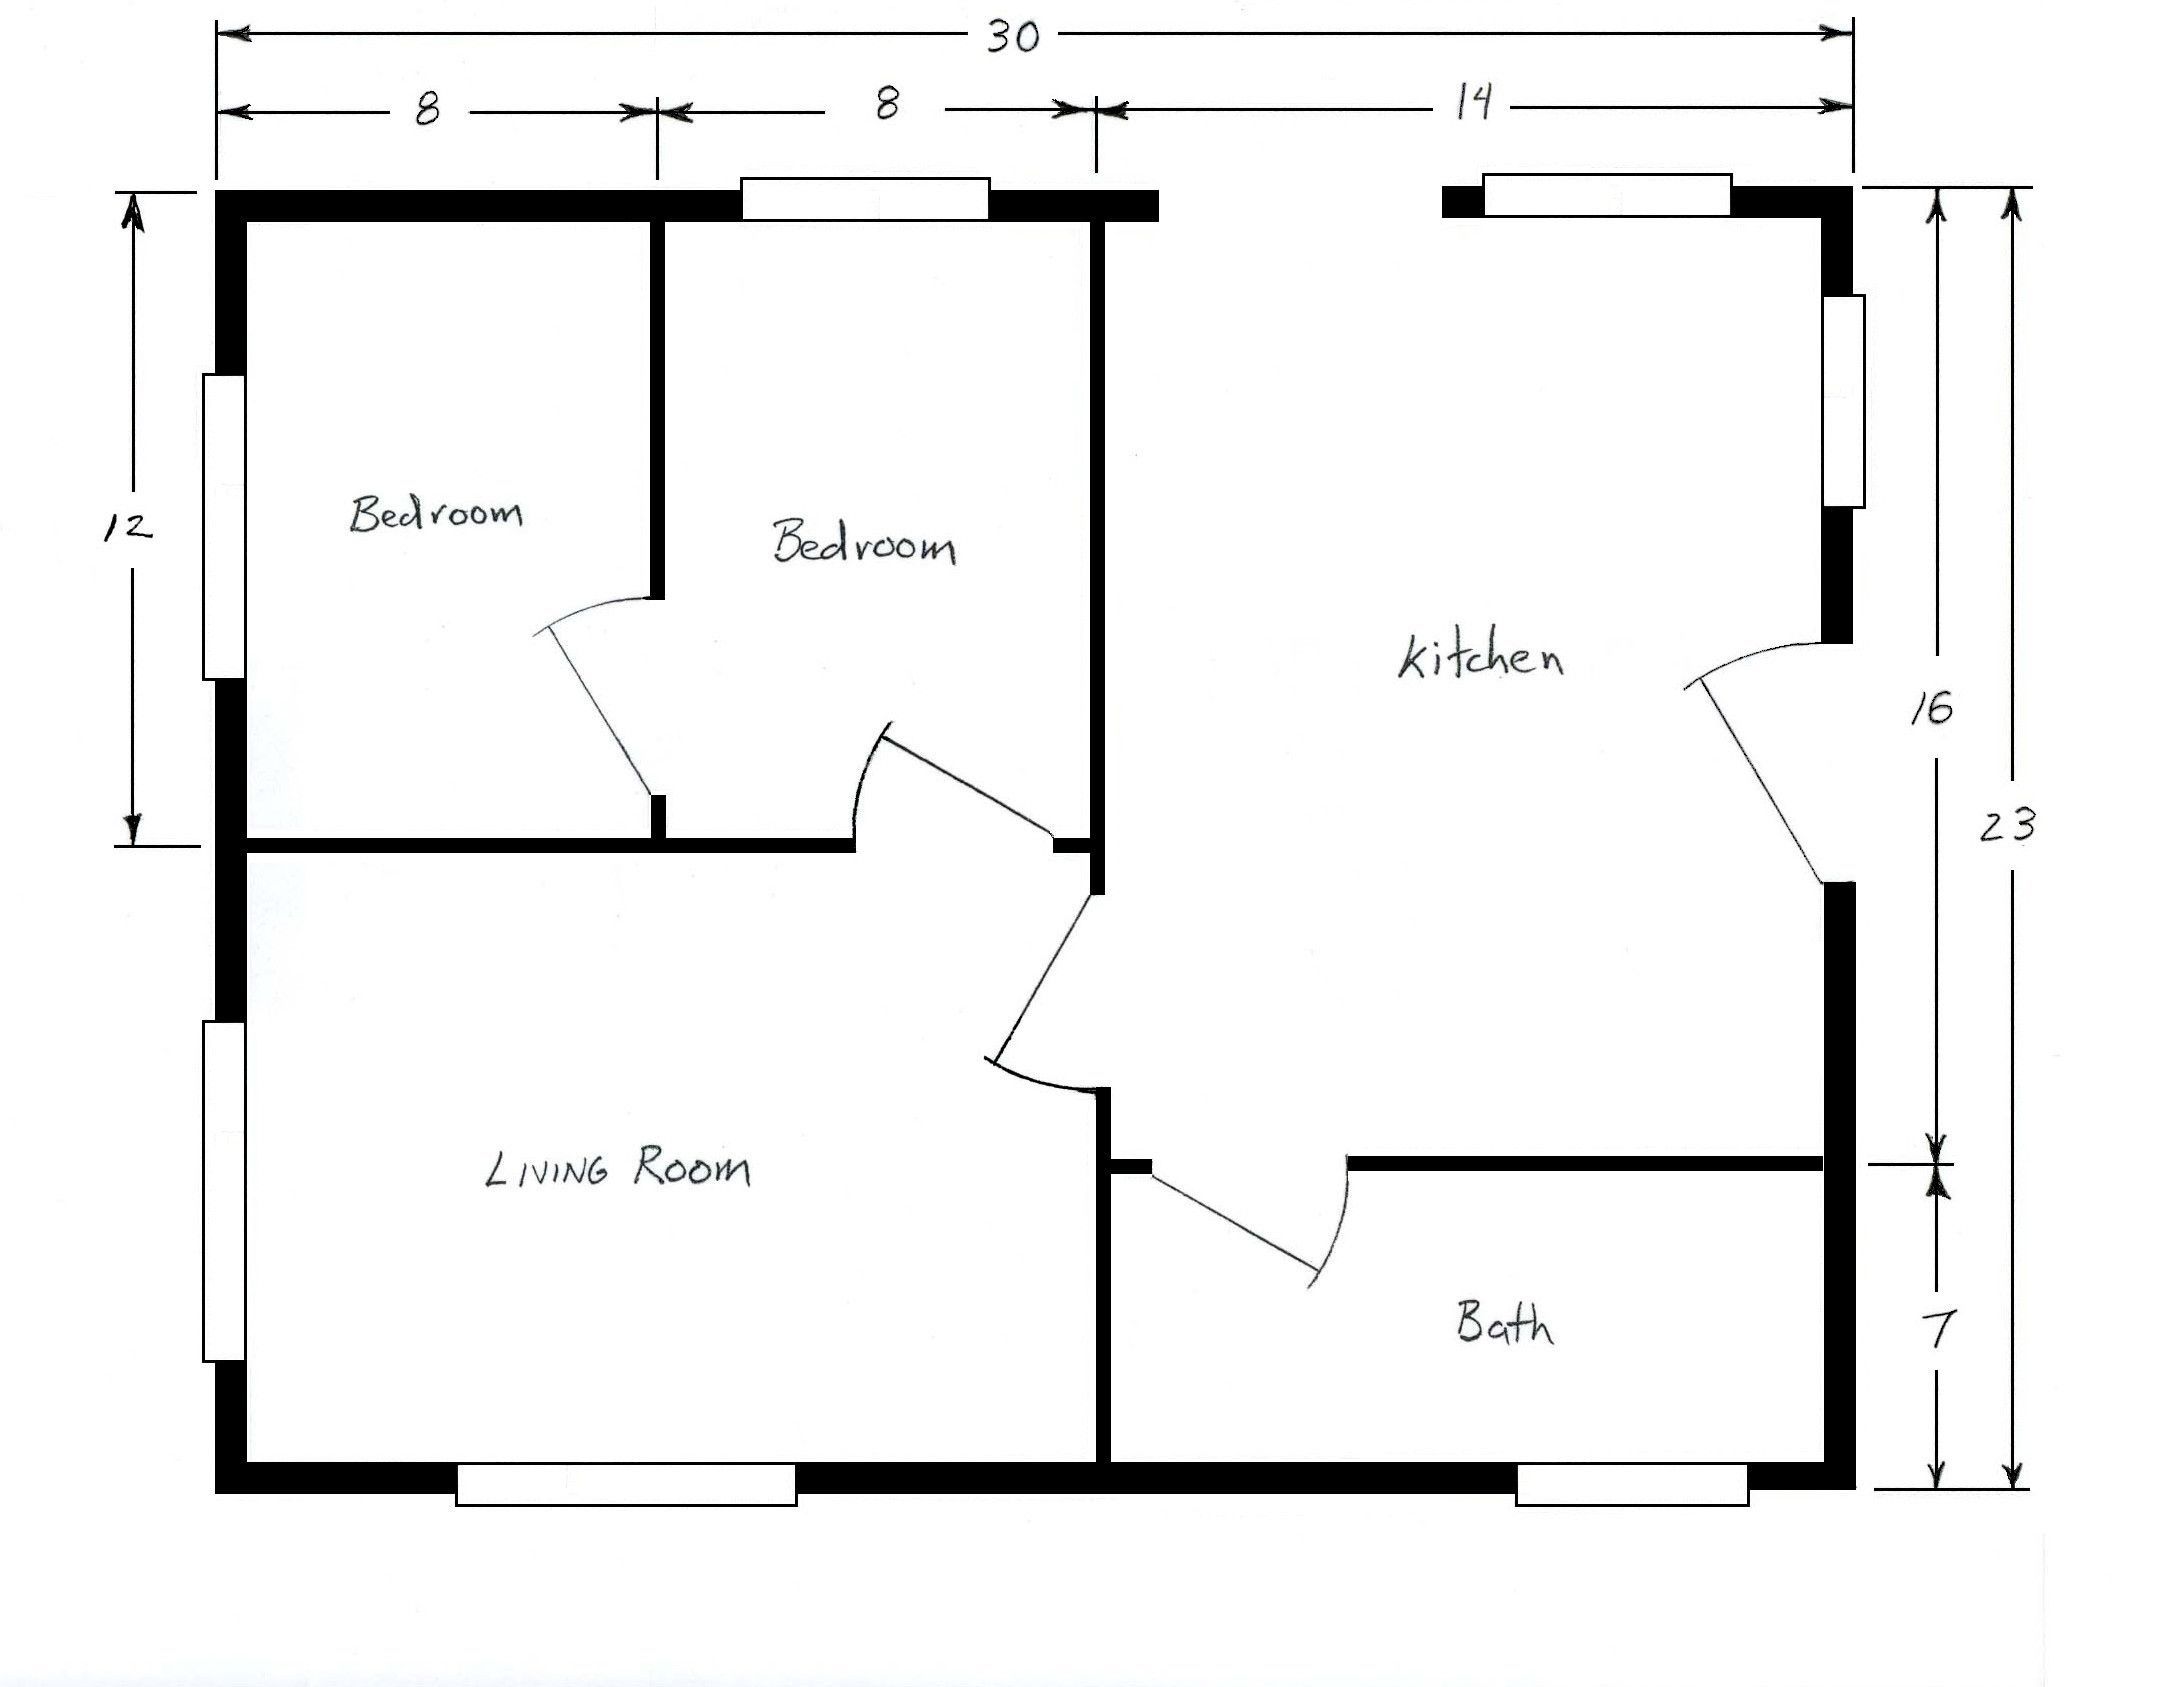 Free Floor Plan Template Inspirational Free Home Plans Sample House Floor Plans Simple Floor Free Floor Plans Simple Floor Plans Floor Plans